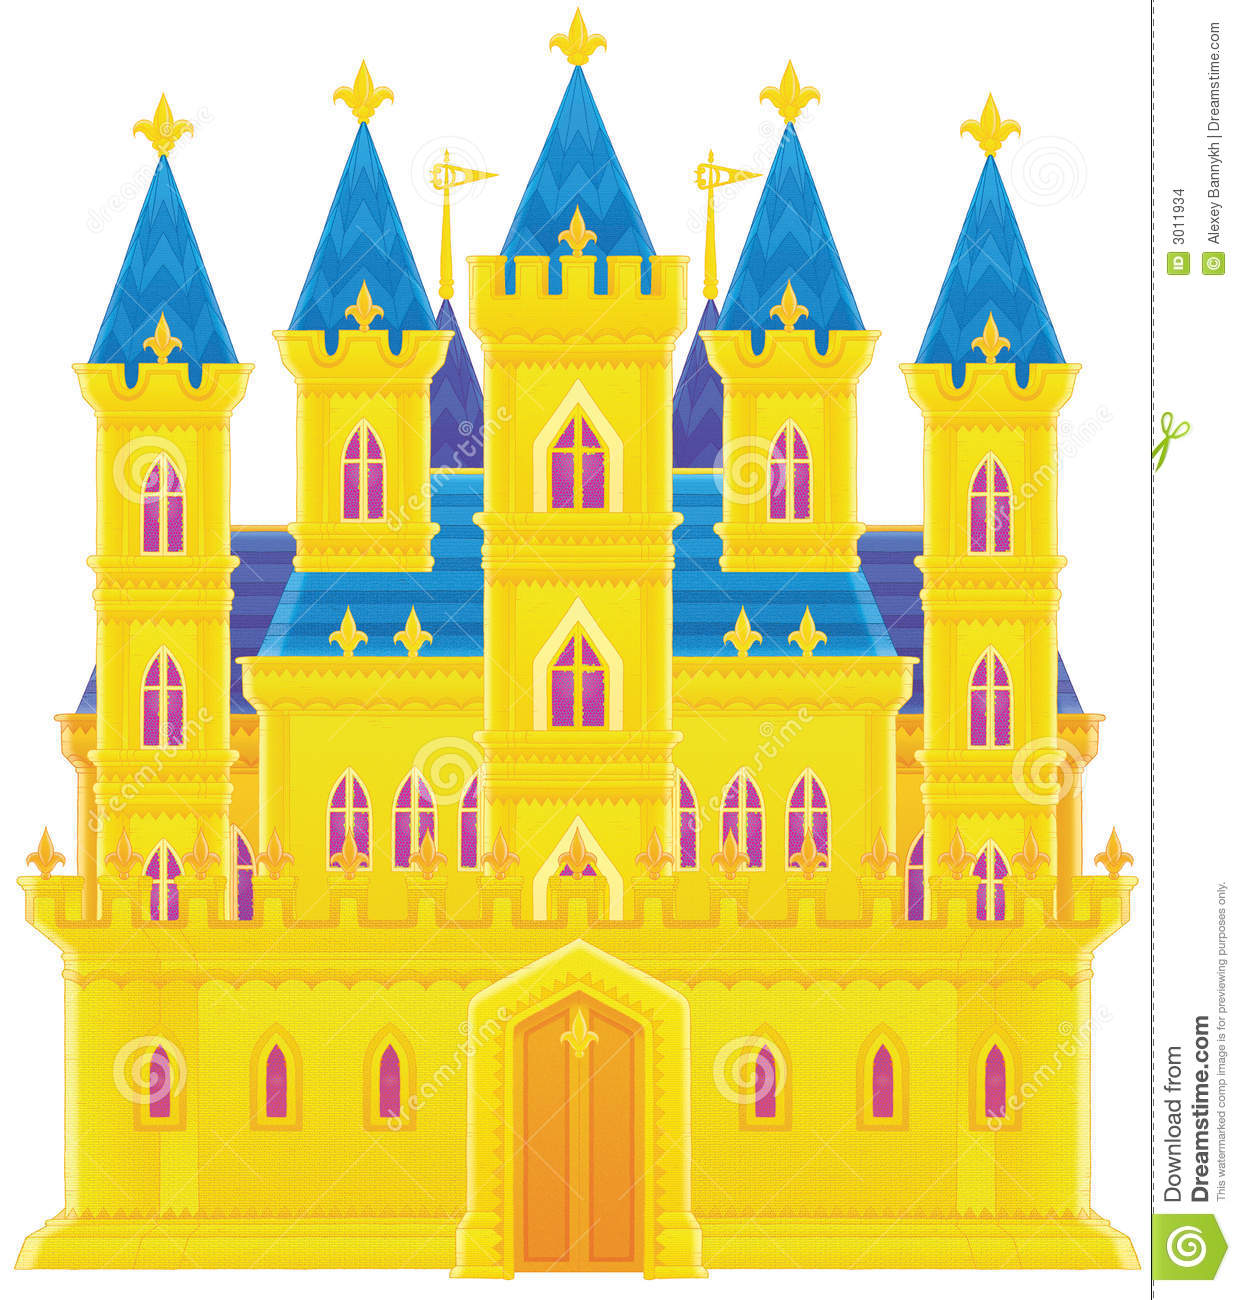 Palace clipart Panda Clipart Clipart Images Palace